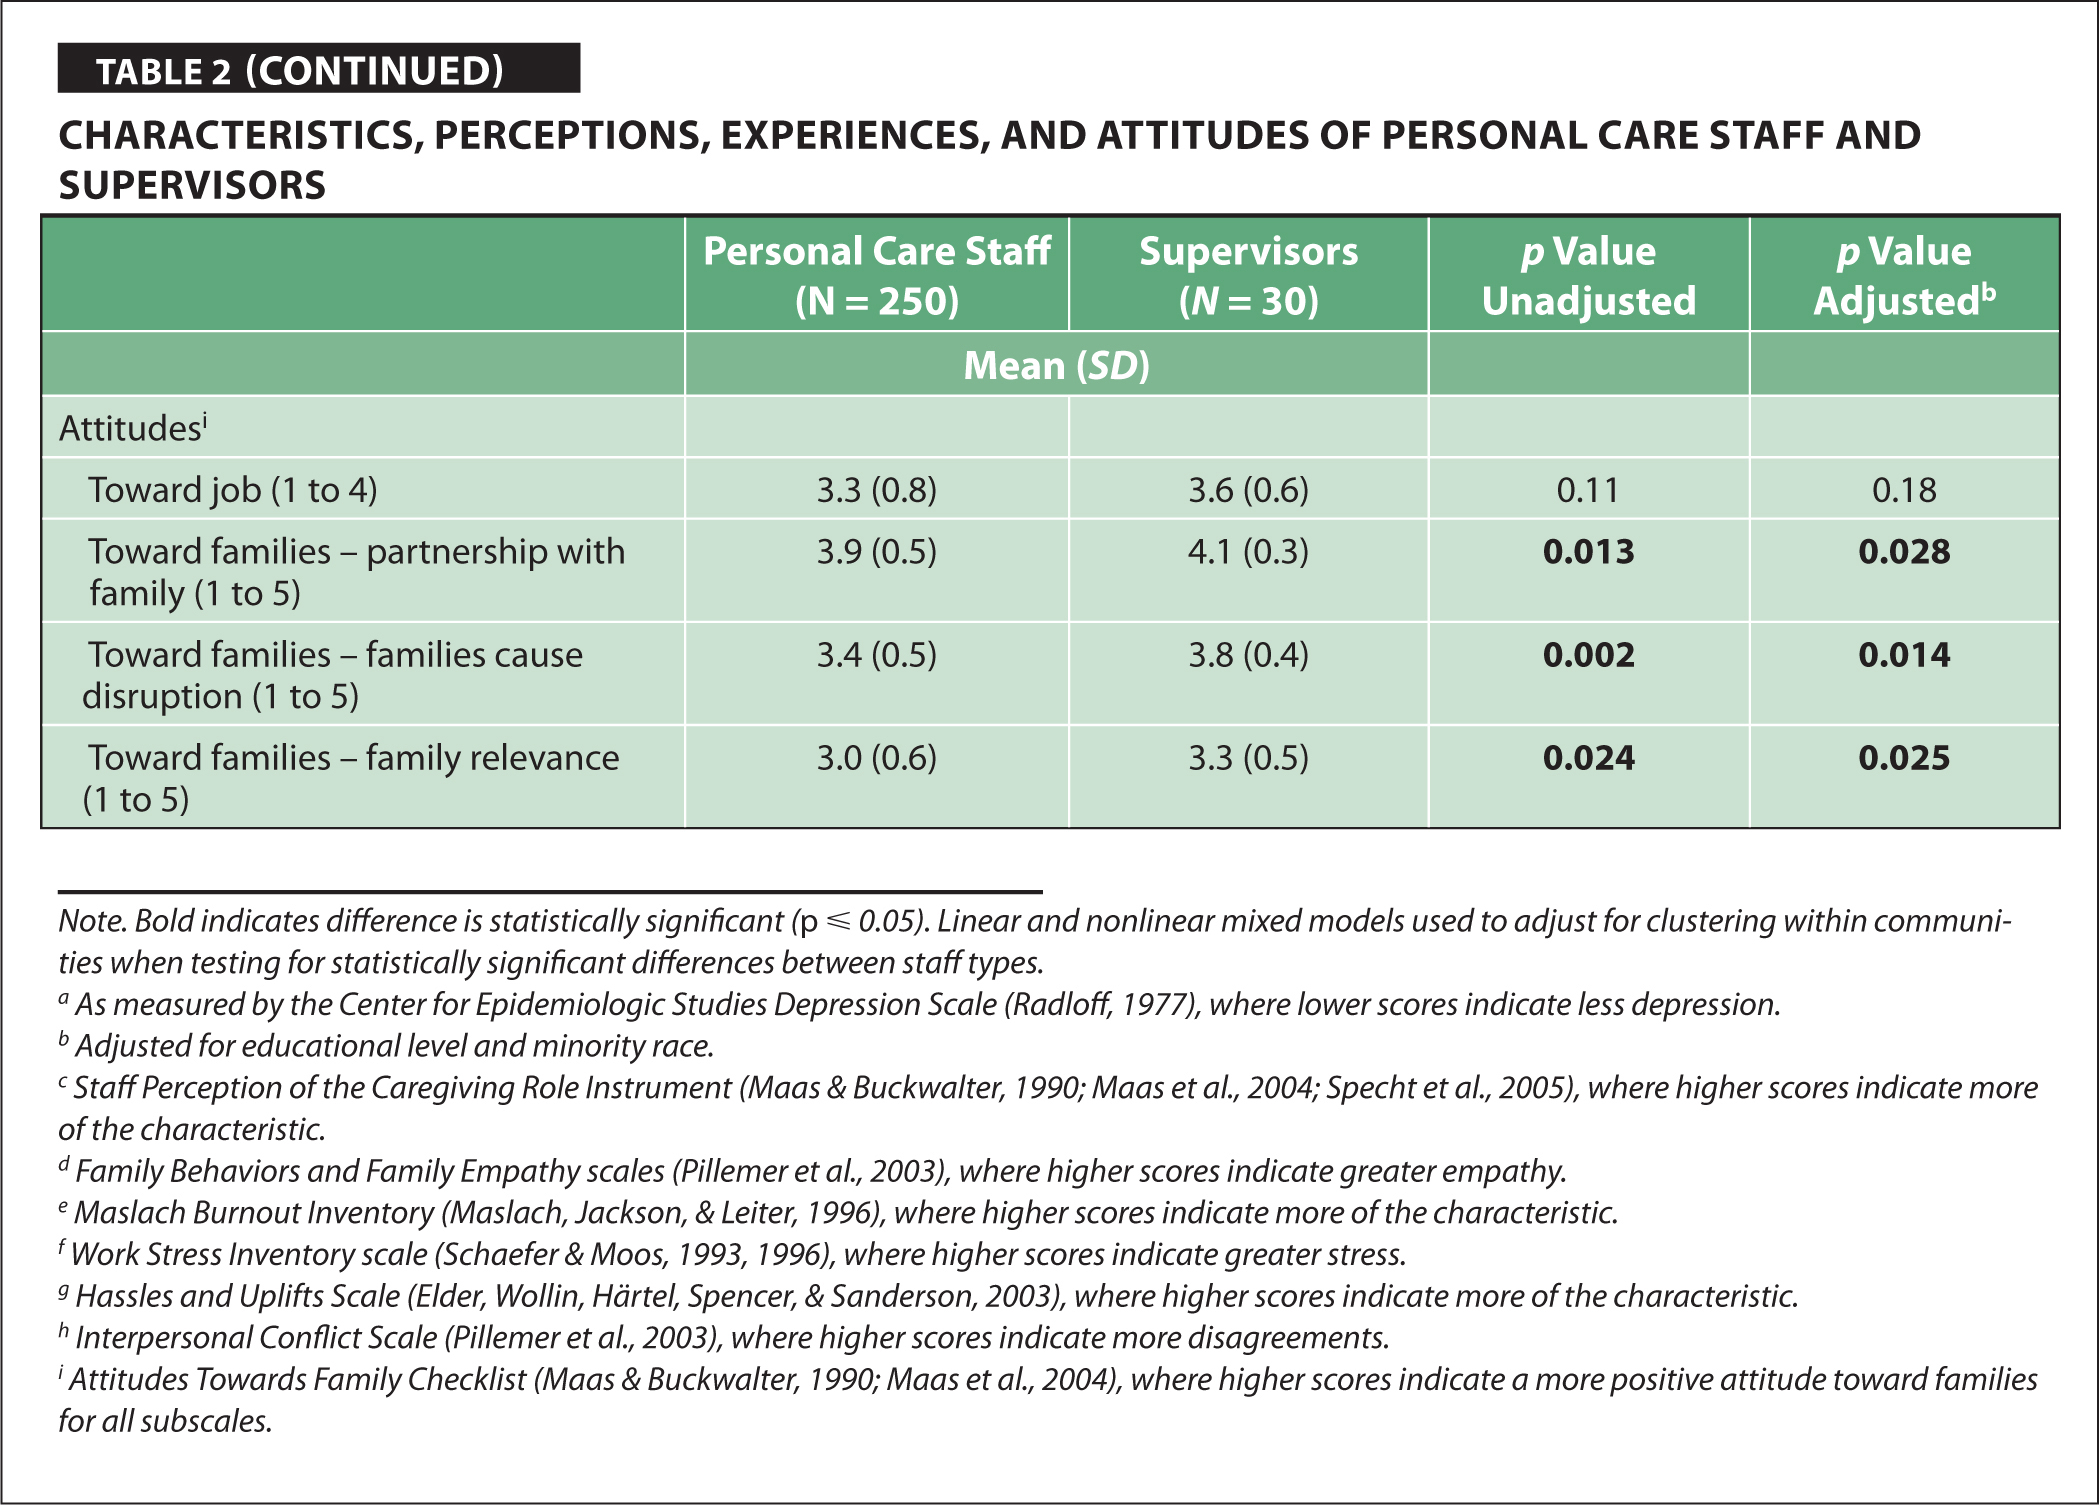 Characteristics, Perceptions, Experiences, and Attitudes of Personal Care Staff and Supervisors